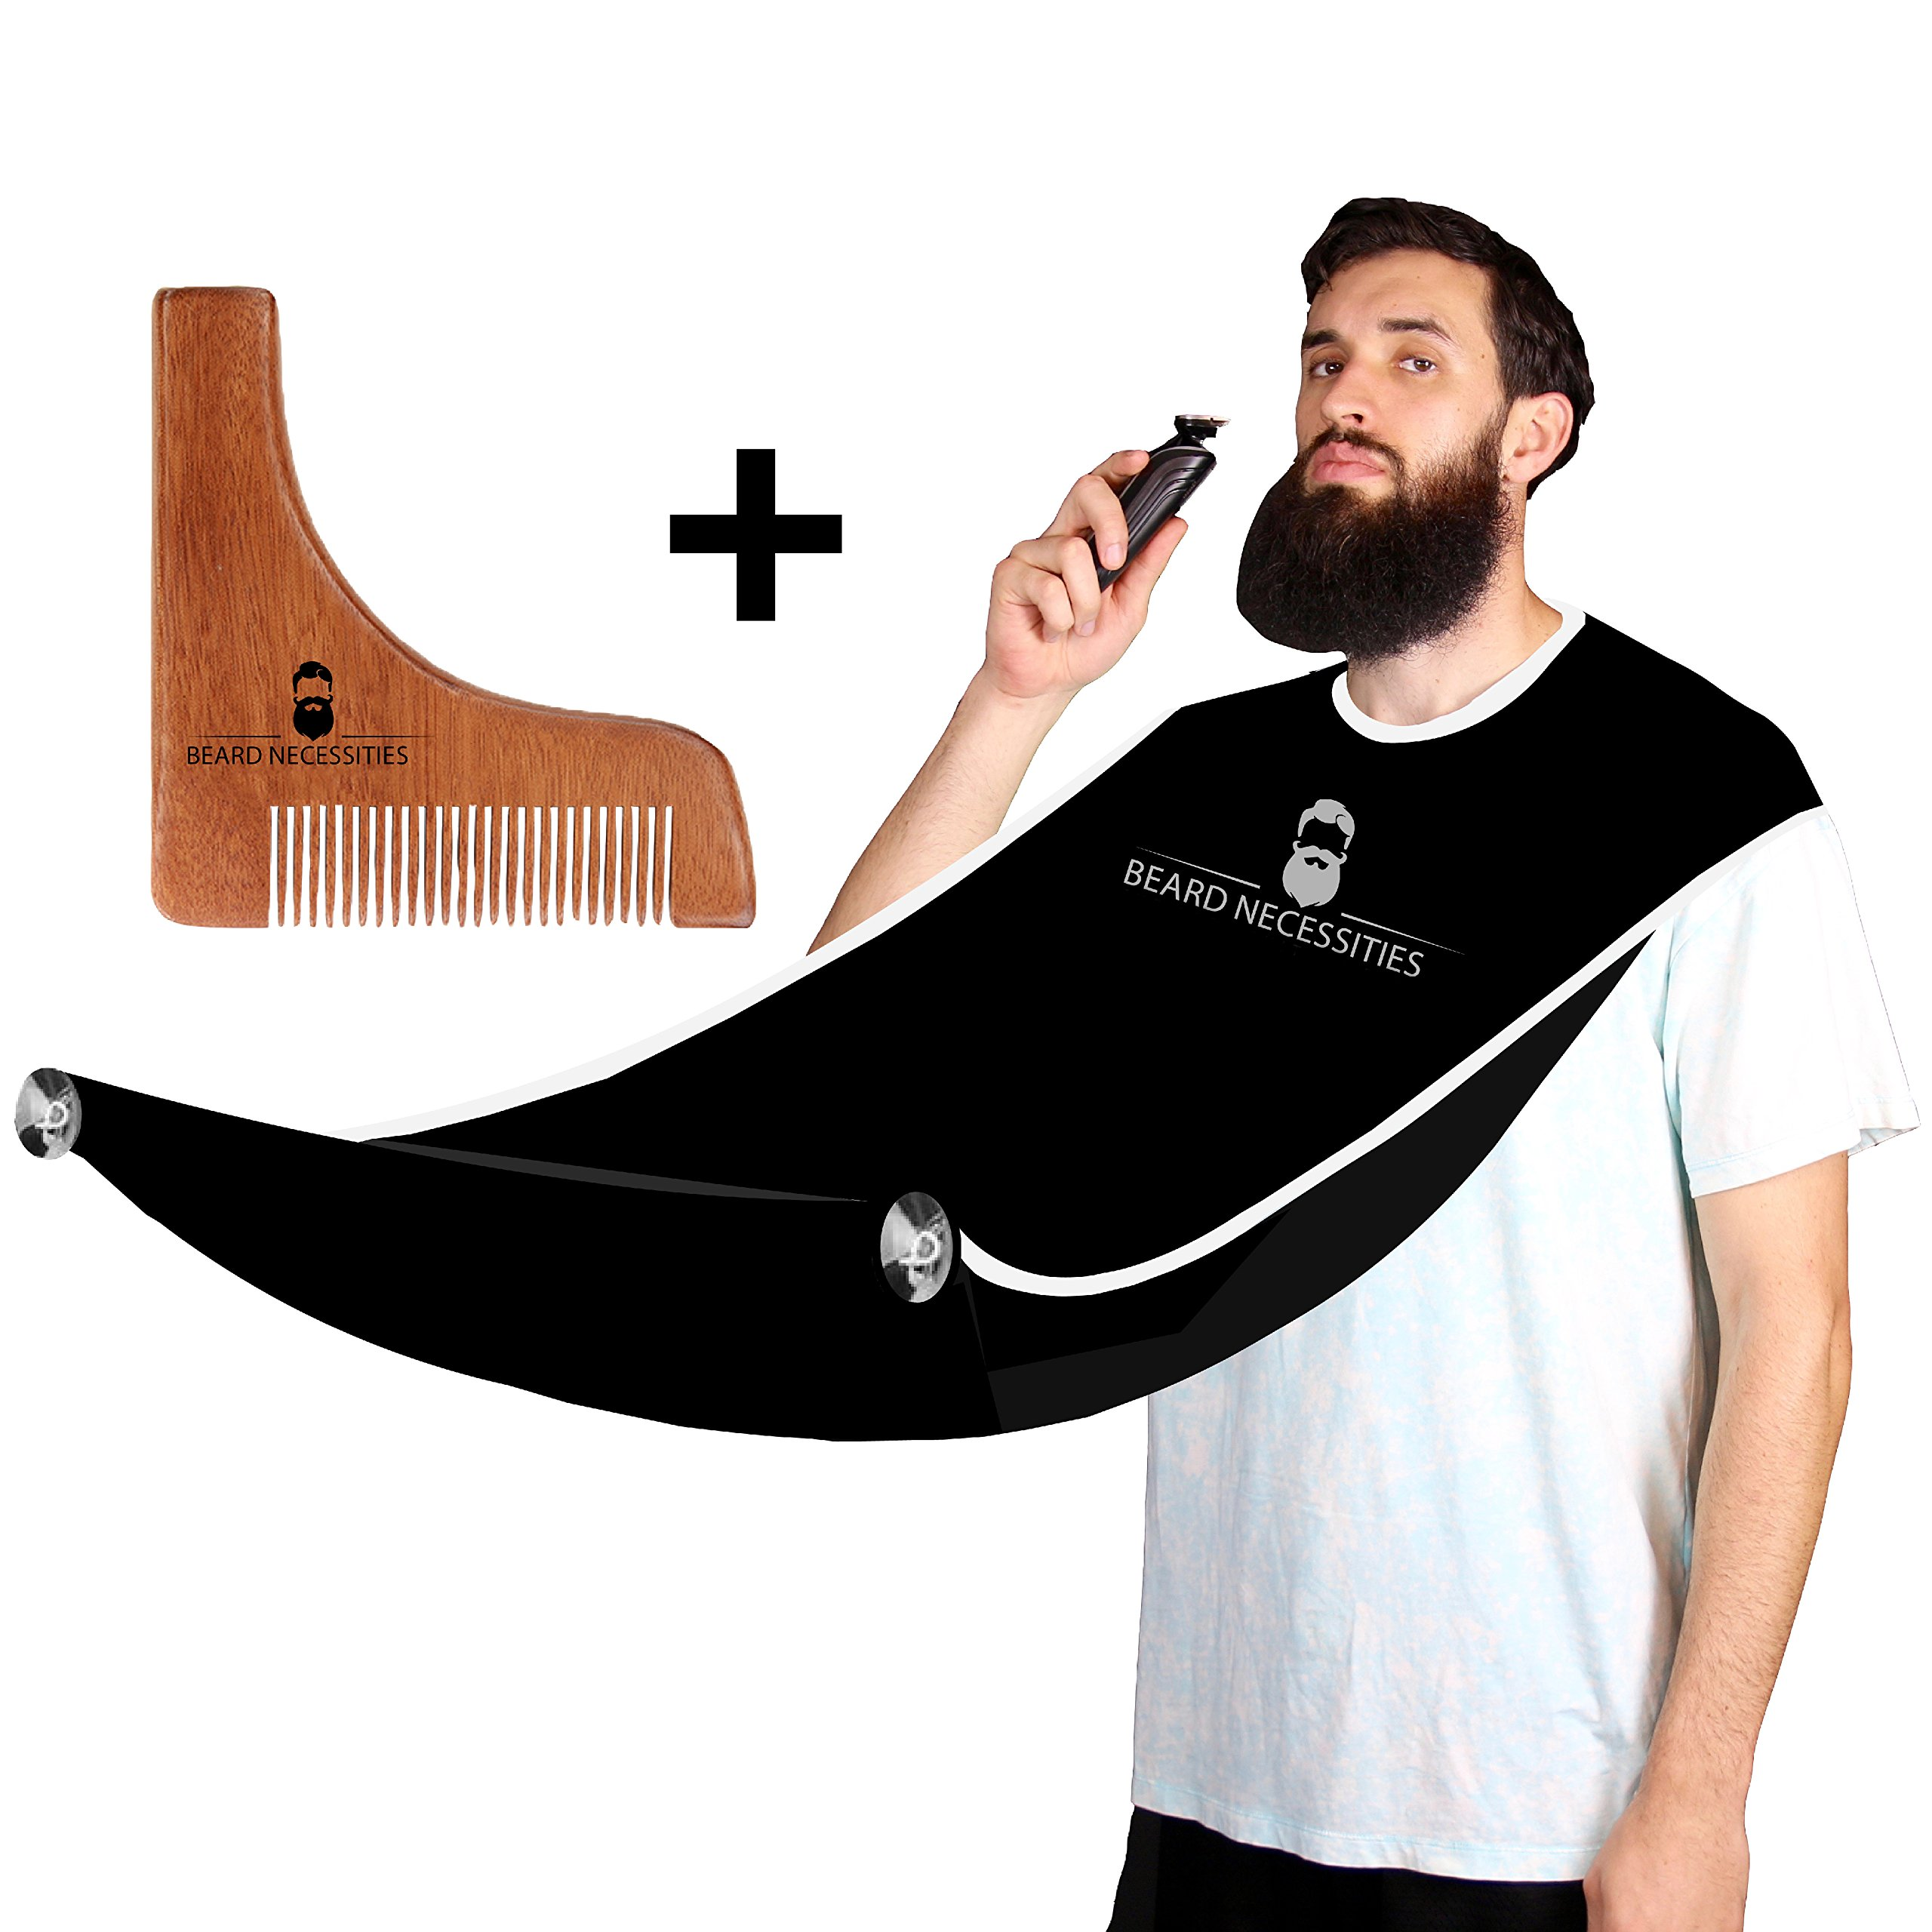 Beard Shaving Bib + Shaping Comb Kit by Beard Necessities Adjustable Apron - Best To Use With Trimmer For Catching Mens Facial Hair. Grooming Care Set For Men Includes Bonus Tool. Shave Better Today!